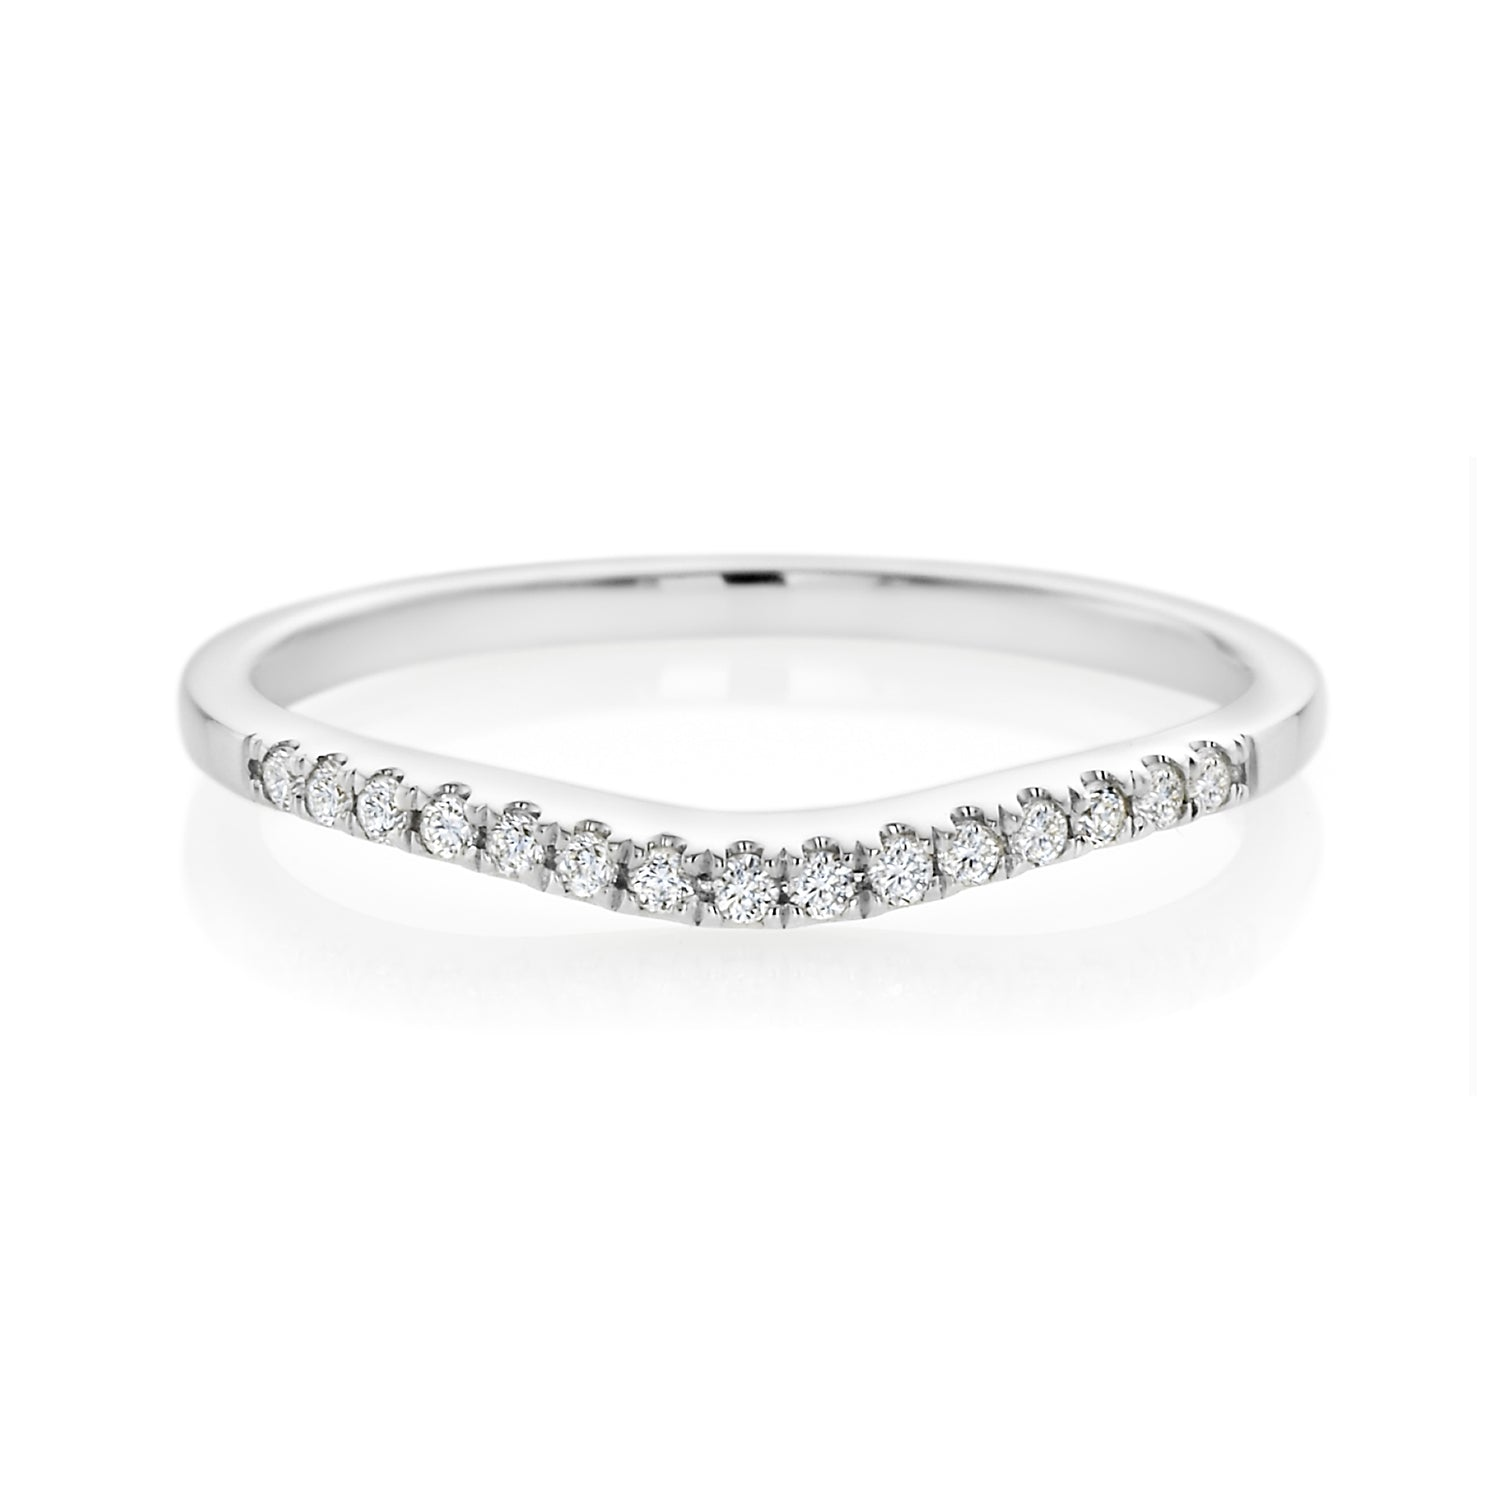 Forevermark 18ct White Gold Round Brilliant Cut with 0.10 CARAT tw of Diamonds